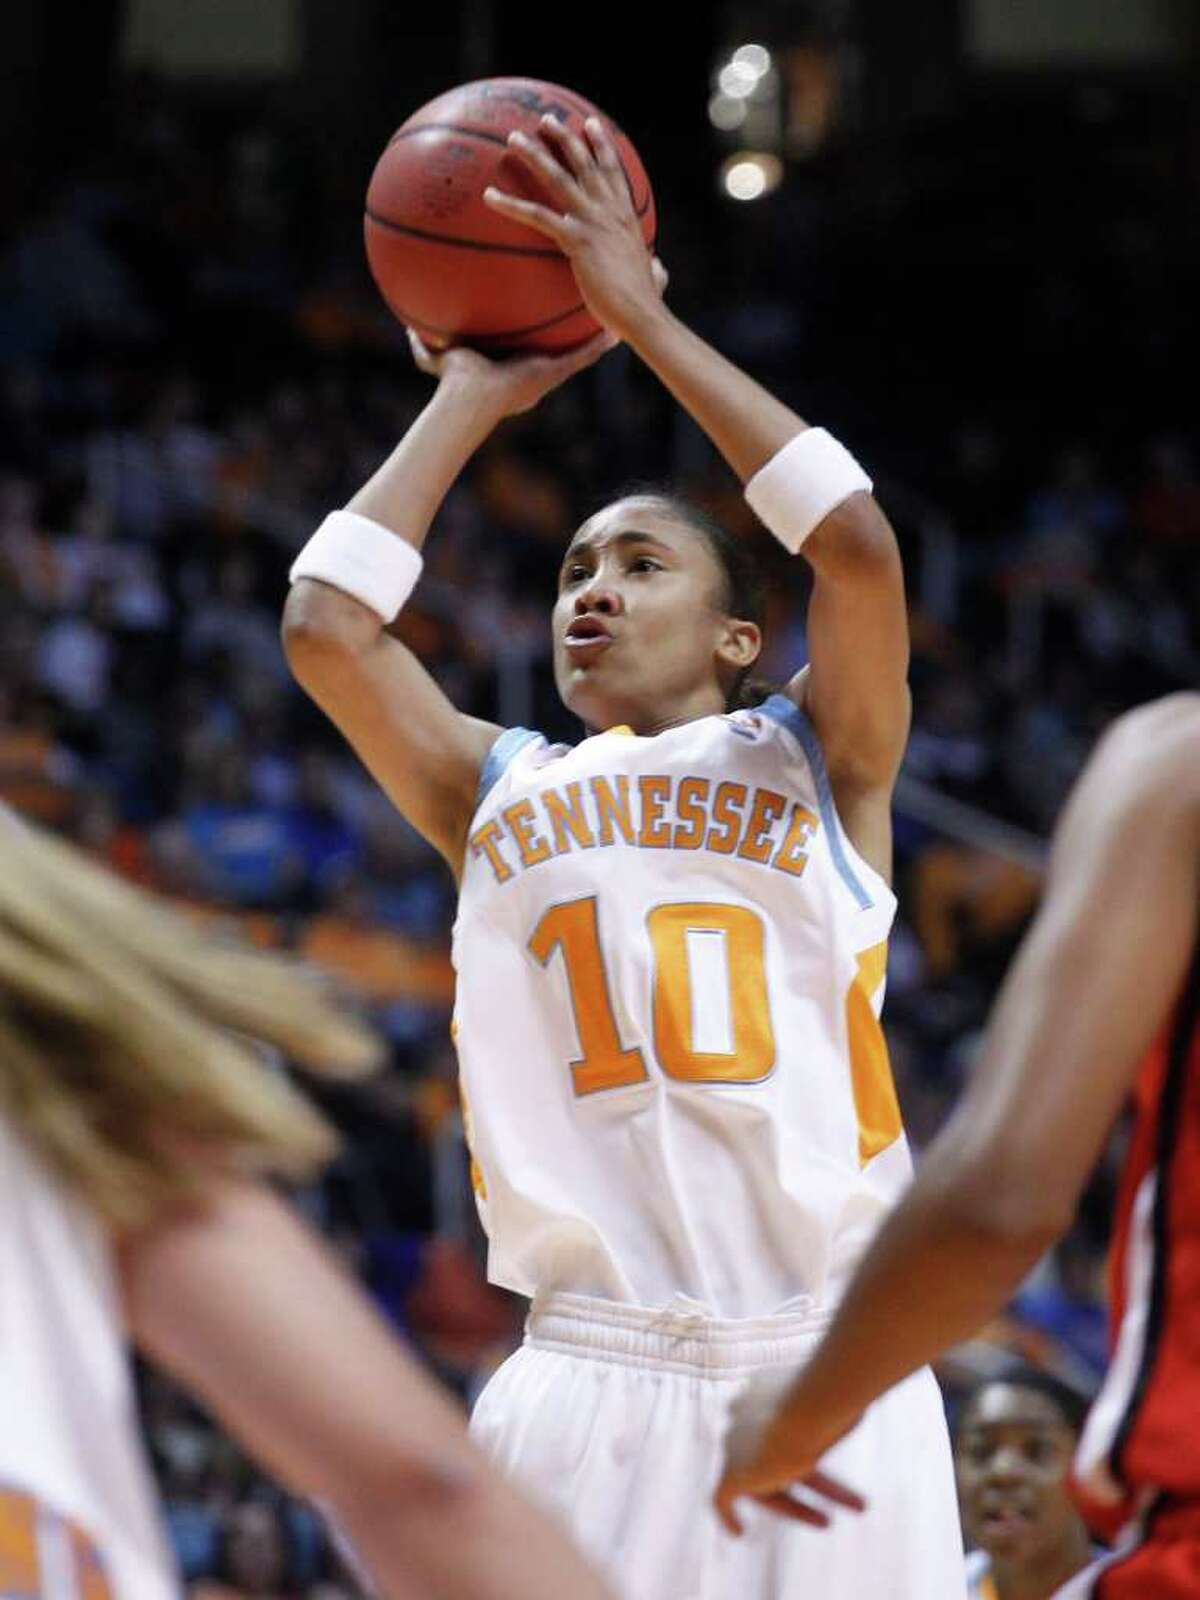 Tennessee's Meighan Simmons shoots during the first half of an NCAA college basketball game against Lamar Wednesday, Dec. 1, 2010, in Knoxville, Tenn. (AP Photo/Wade Payne)